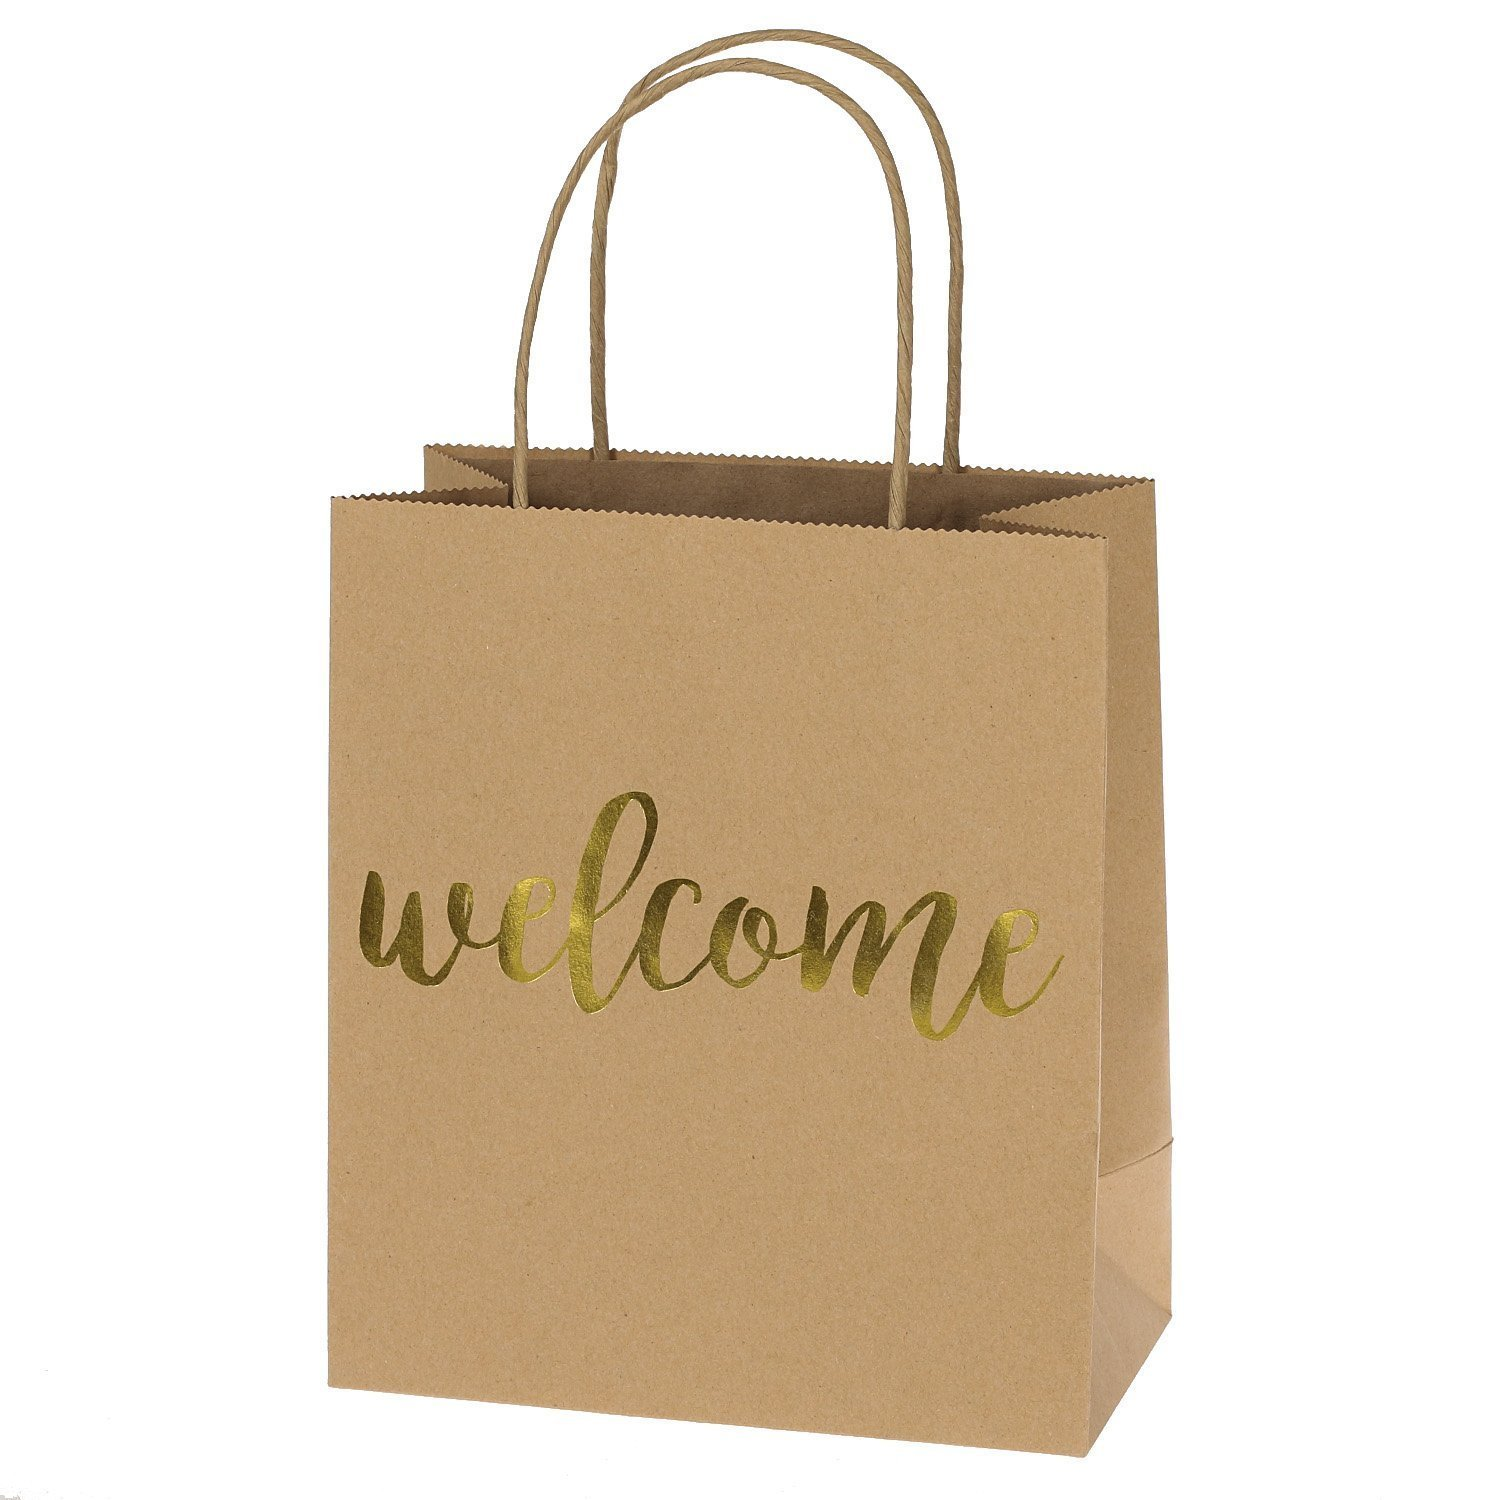 Cheap Hotel Gift Bags For Wedding Guests Find Hotel Gift Bags For